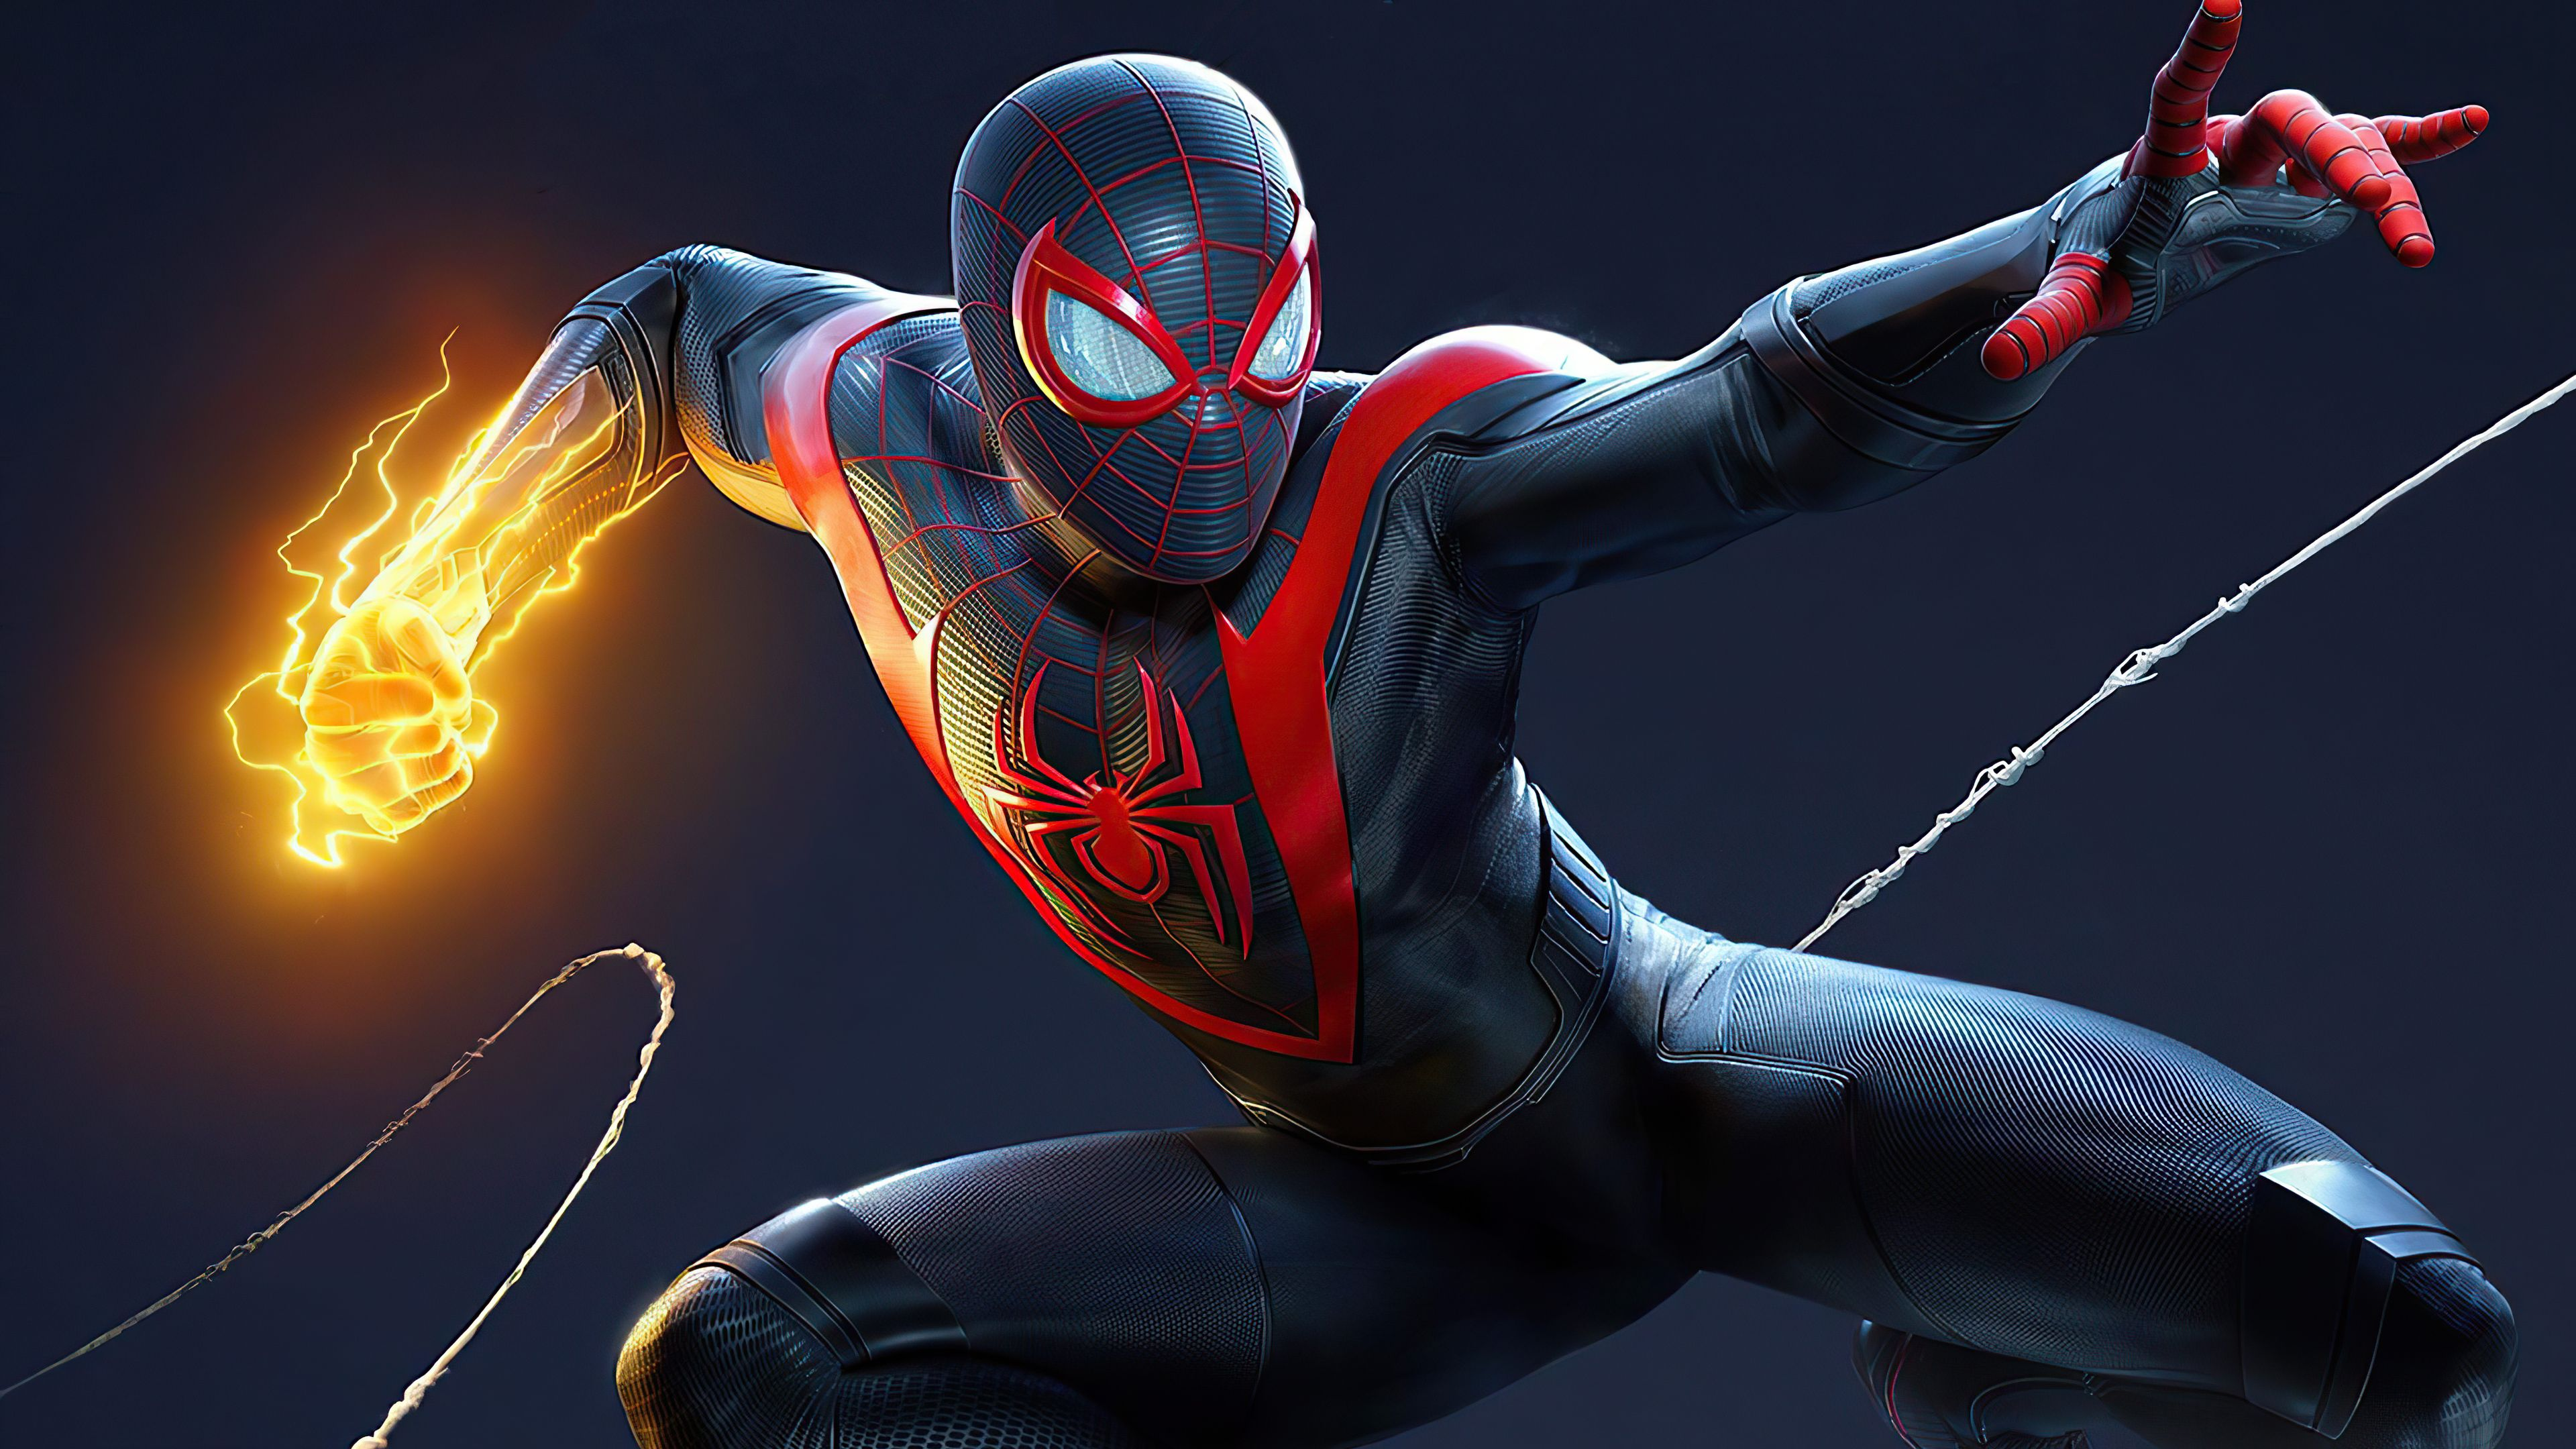 Spider Man Miles Morales Ps5 Wallpapers Top Free Spider Man Miles Morales Ps5 Backgrounds Wallpaperaccess